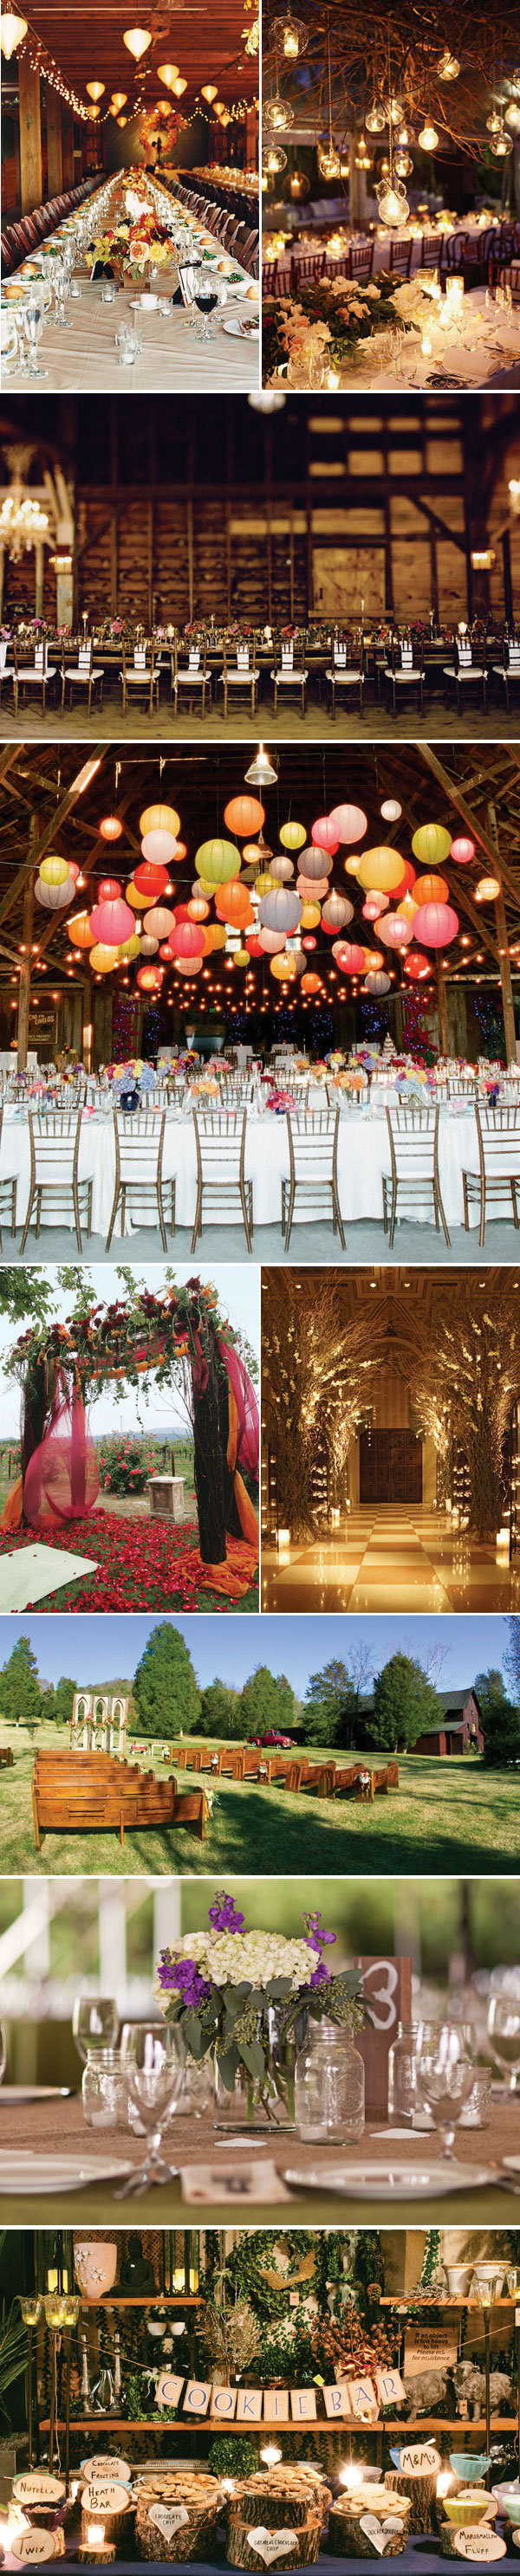 Wedding Trends - Wedding Style Inspiration Boards | Wedding